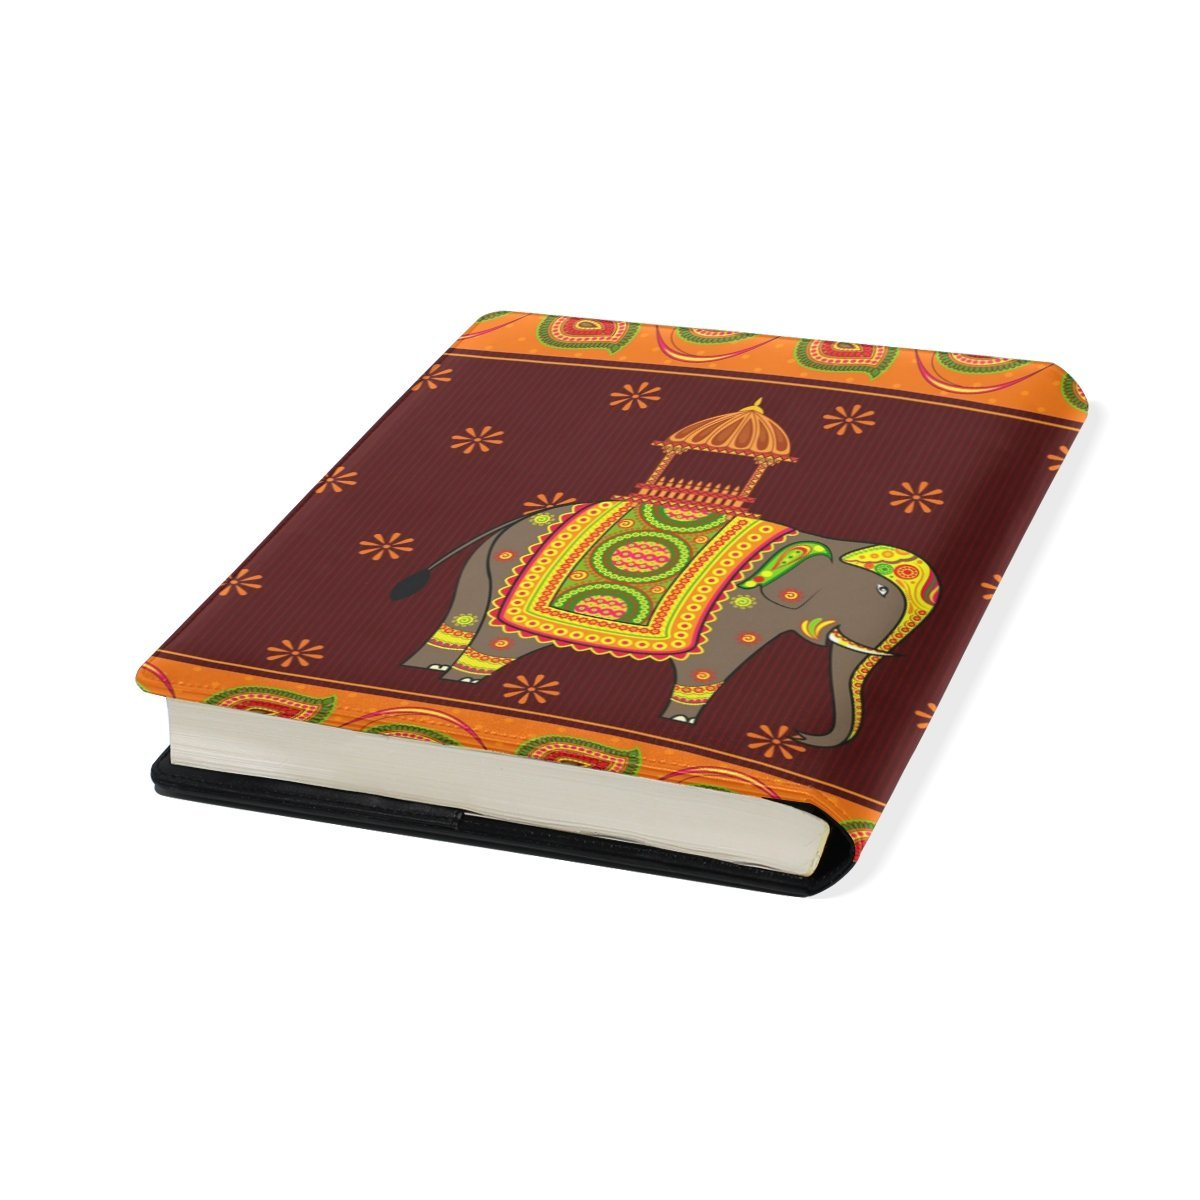 Sunlome Decorated Indian Elephant Pattern Stretchable PU Leather Book Cover 9 x 11 Inches Fits for School Hardcover Textbooks